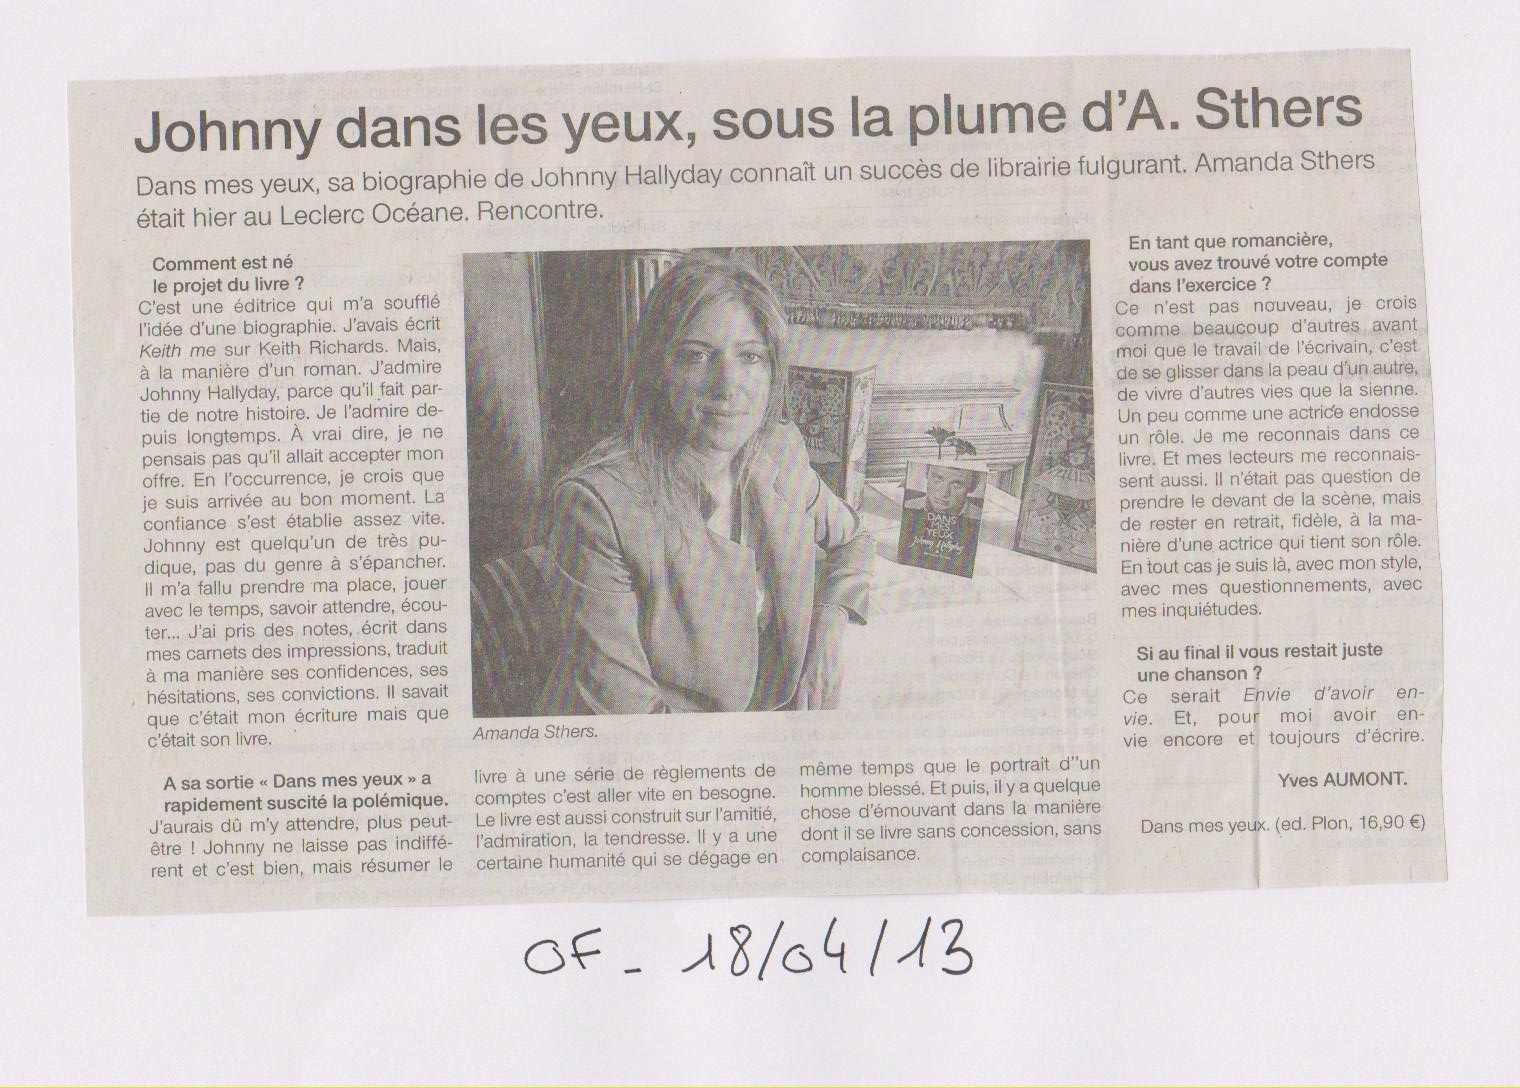 OUEST FRANCE - AMANDA STHERS - 18-04-13